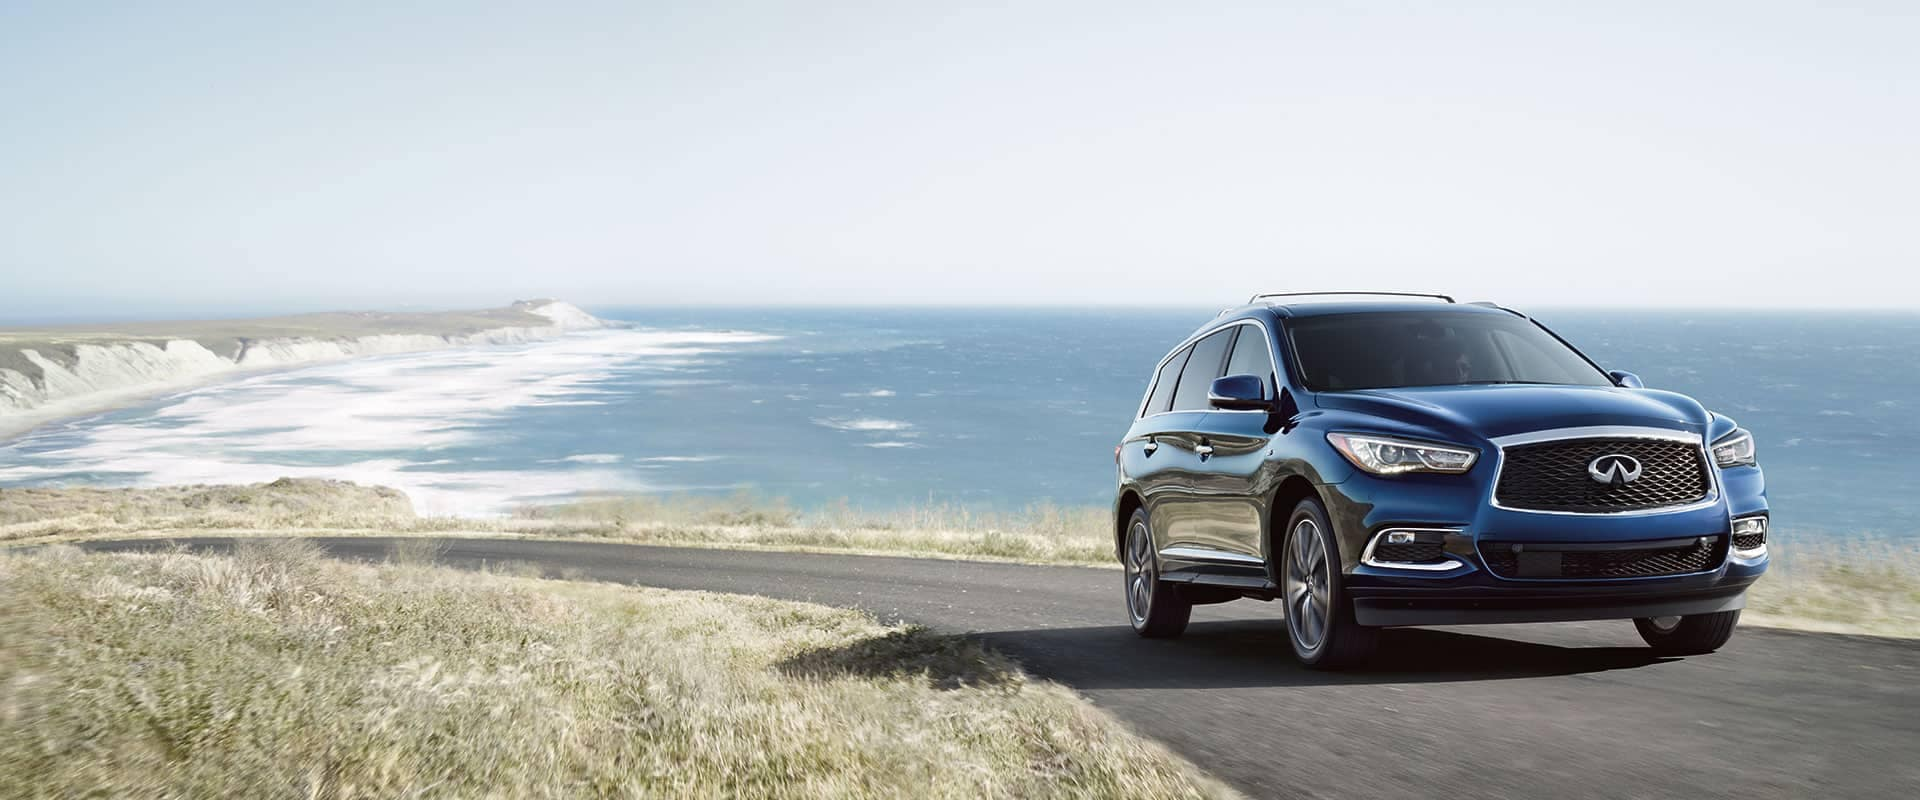 INFINITI QX60 driving down curved road